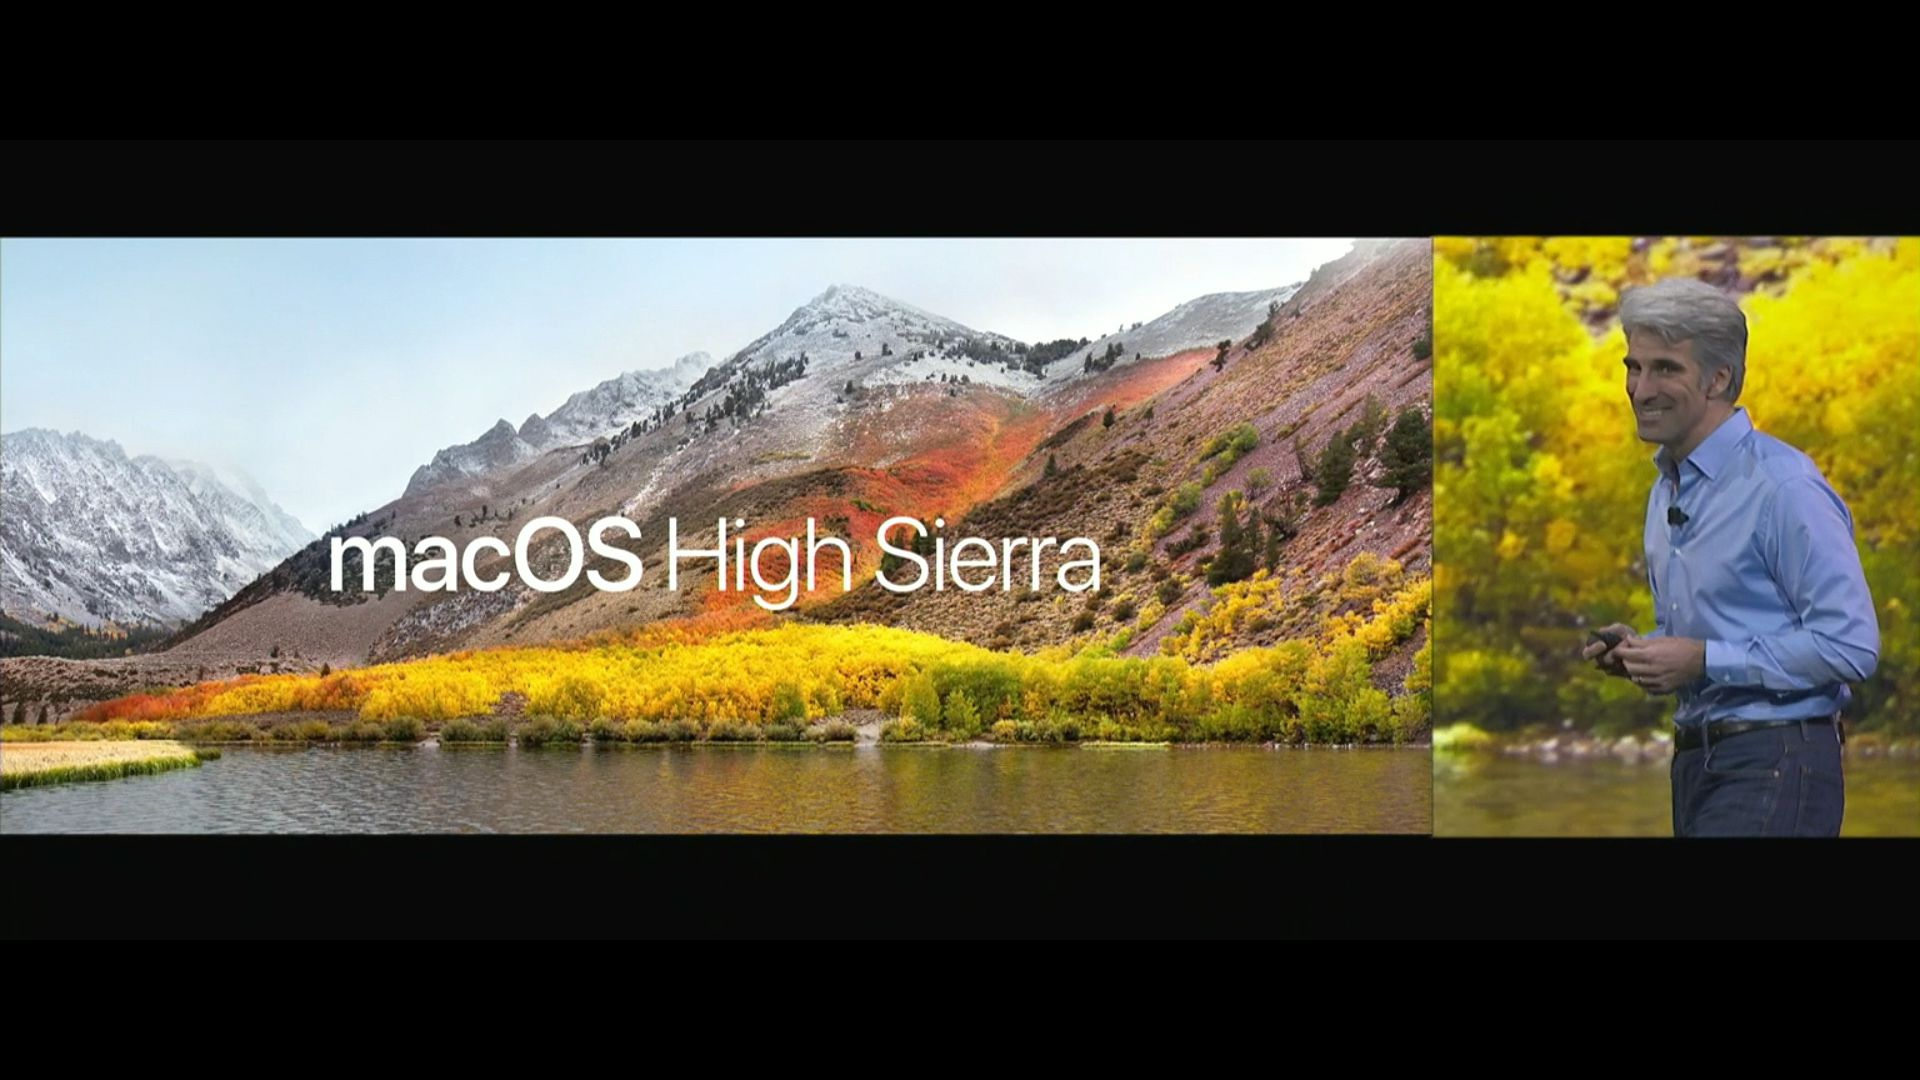 macos high sierra version